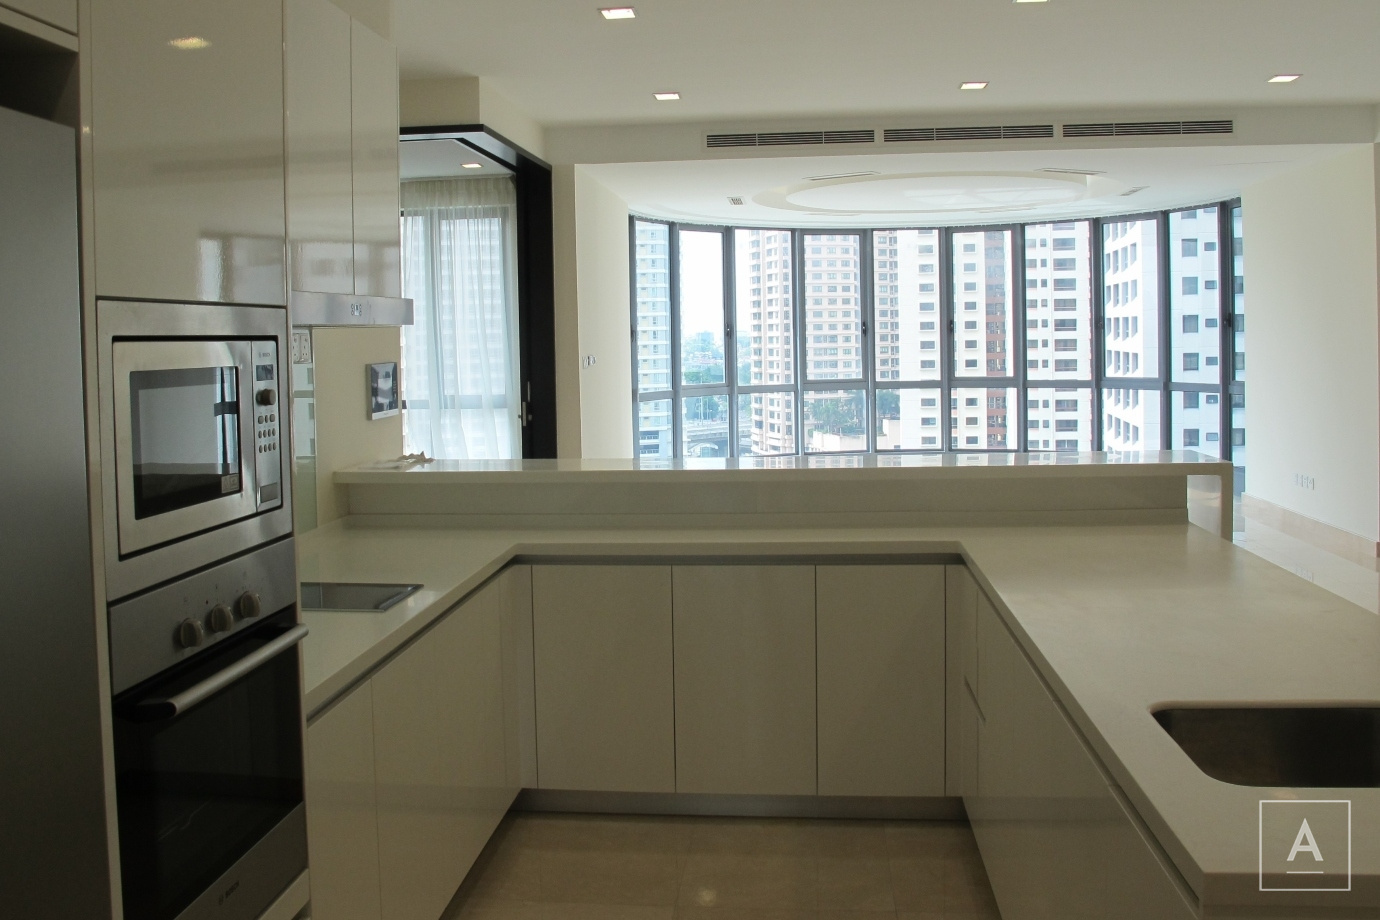 11 Mont Kiara, Mont Kiara,Kuala Lumpur, 4 Bedrooms Bedrooms, ,5 BathroomsBathrooms,Condominium / Serviced Residence,To Let,11 Mont Kiara,Jalan Kiara 1,1300